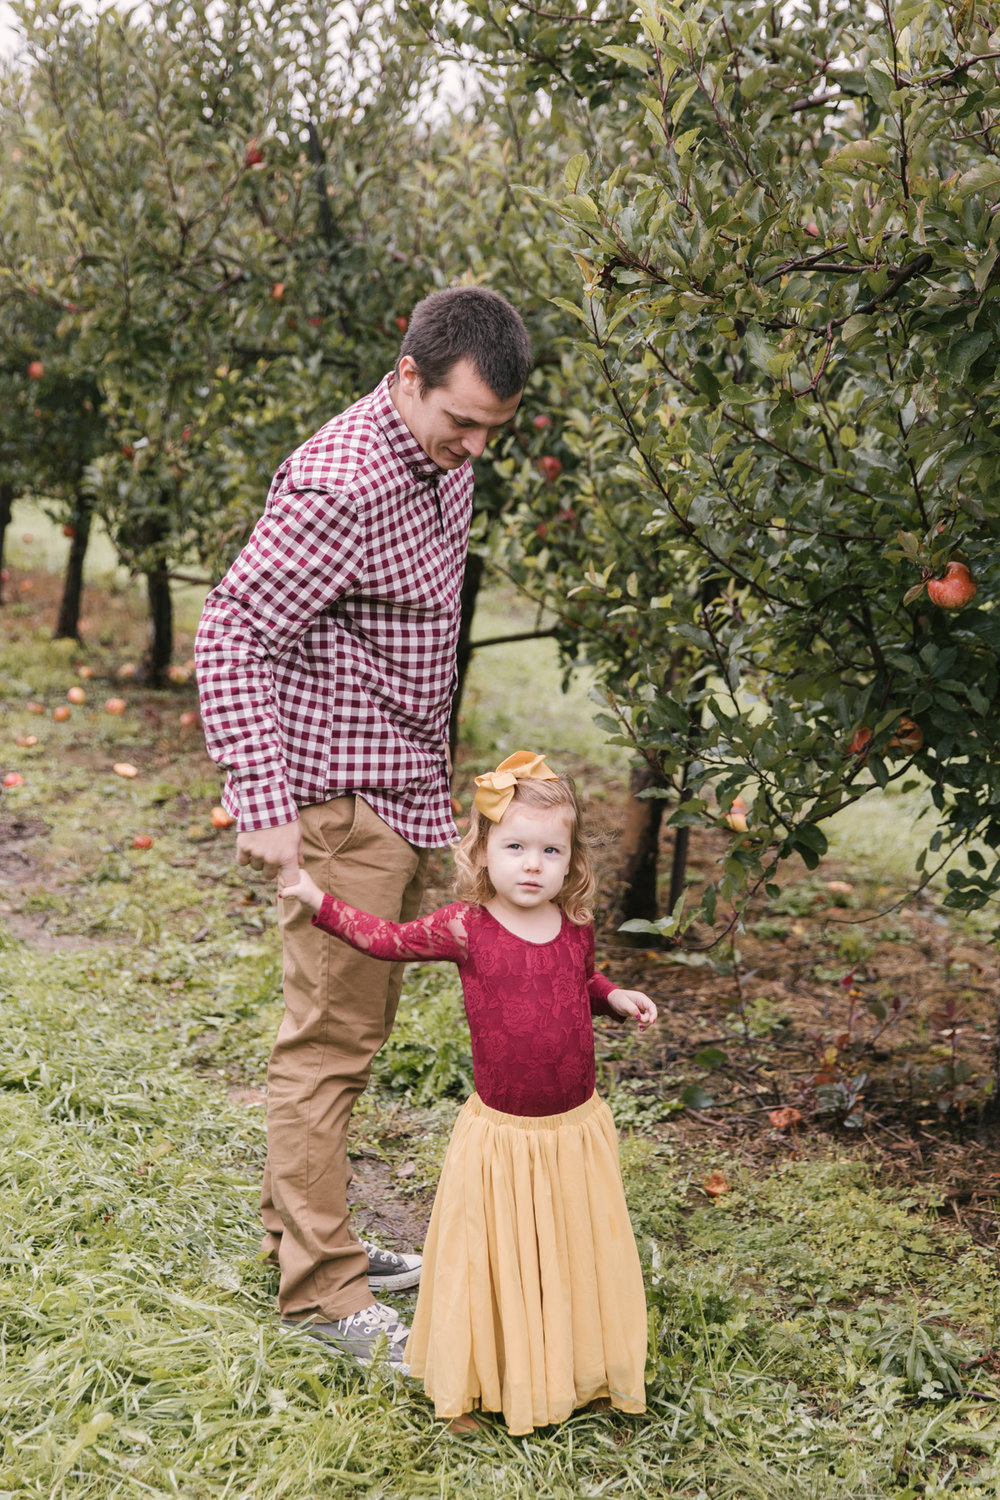 family-photography-session-at-hartford-apple-orchards-hartford-ohio-by-family-photographer-christie-leigh-photo-20.JPG